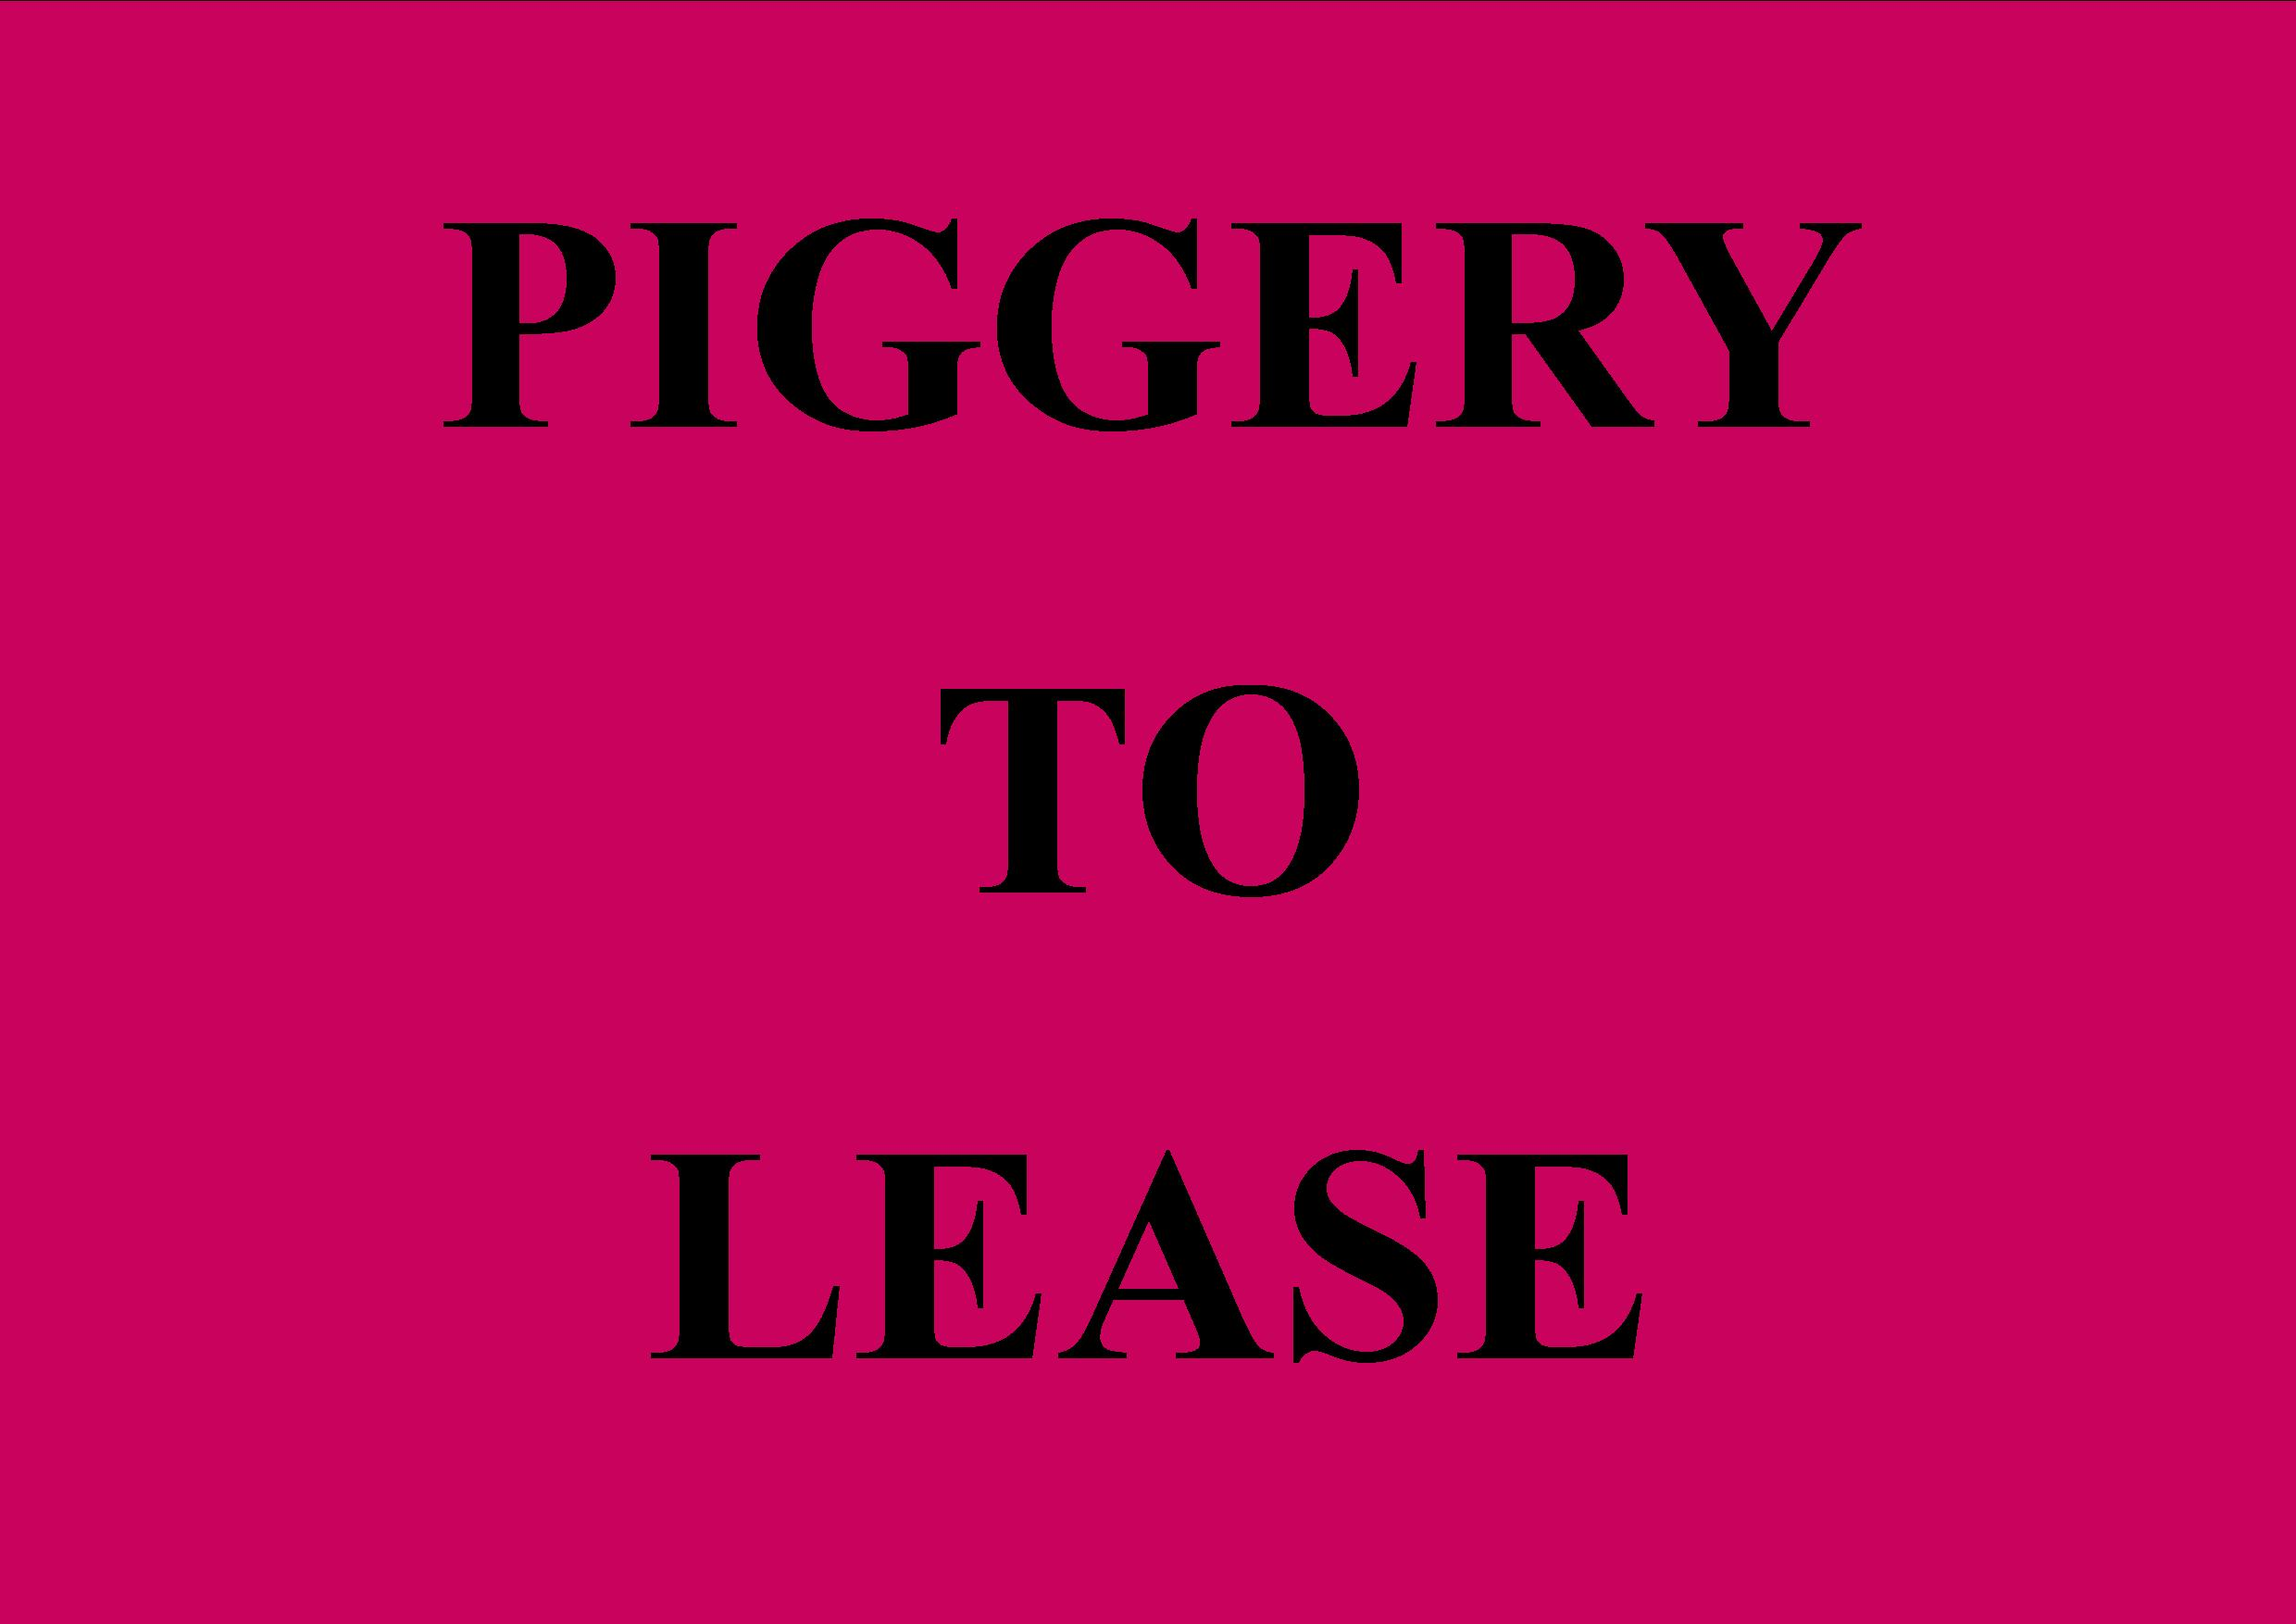 Leasehold Piggery Business for Sale Canterbury